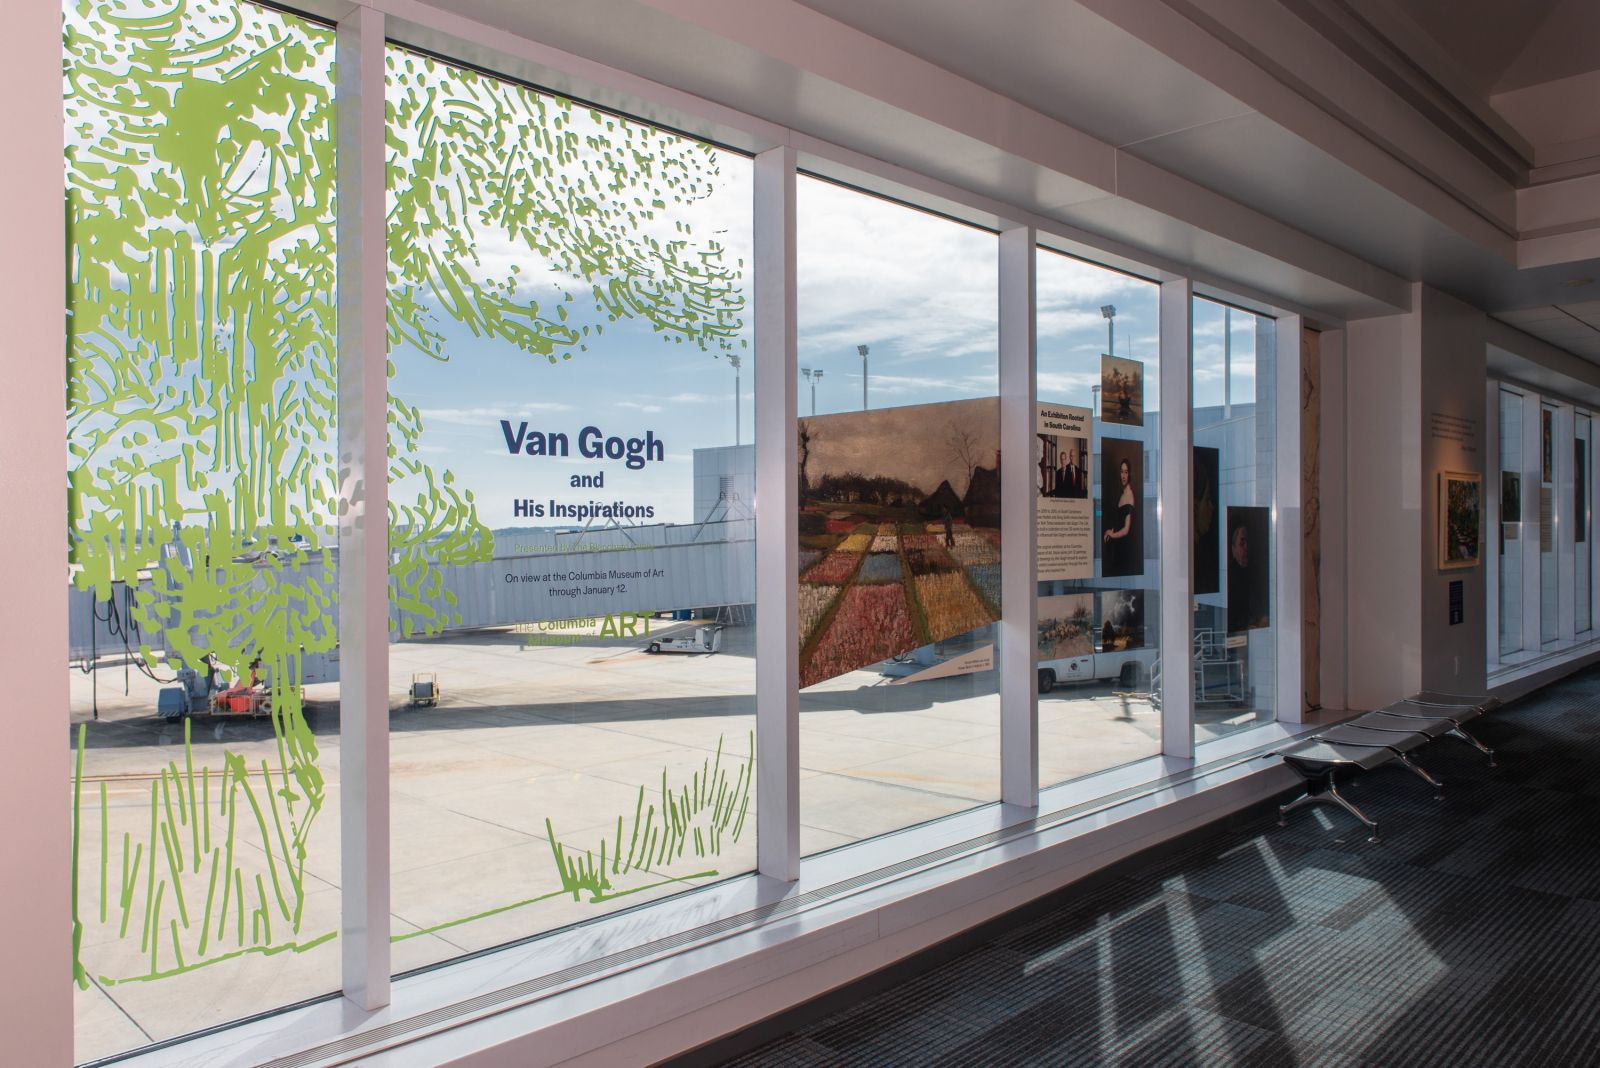 A pop-up van Gogh exhibition will greet CAE passengers until Jan. 12, 2020. (Photo/Provided)